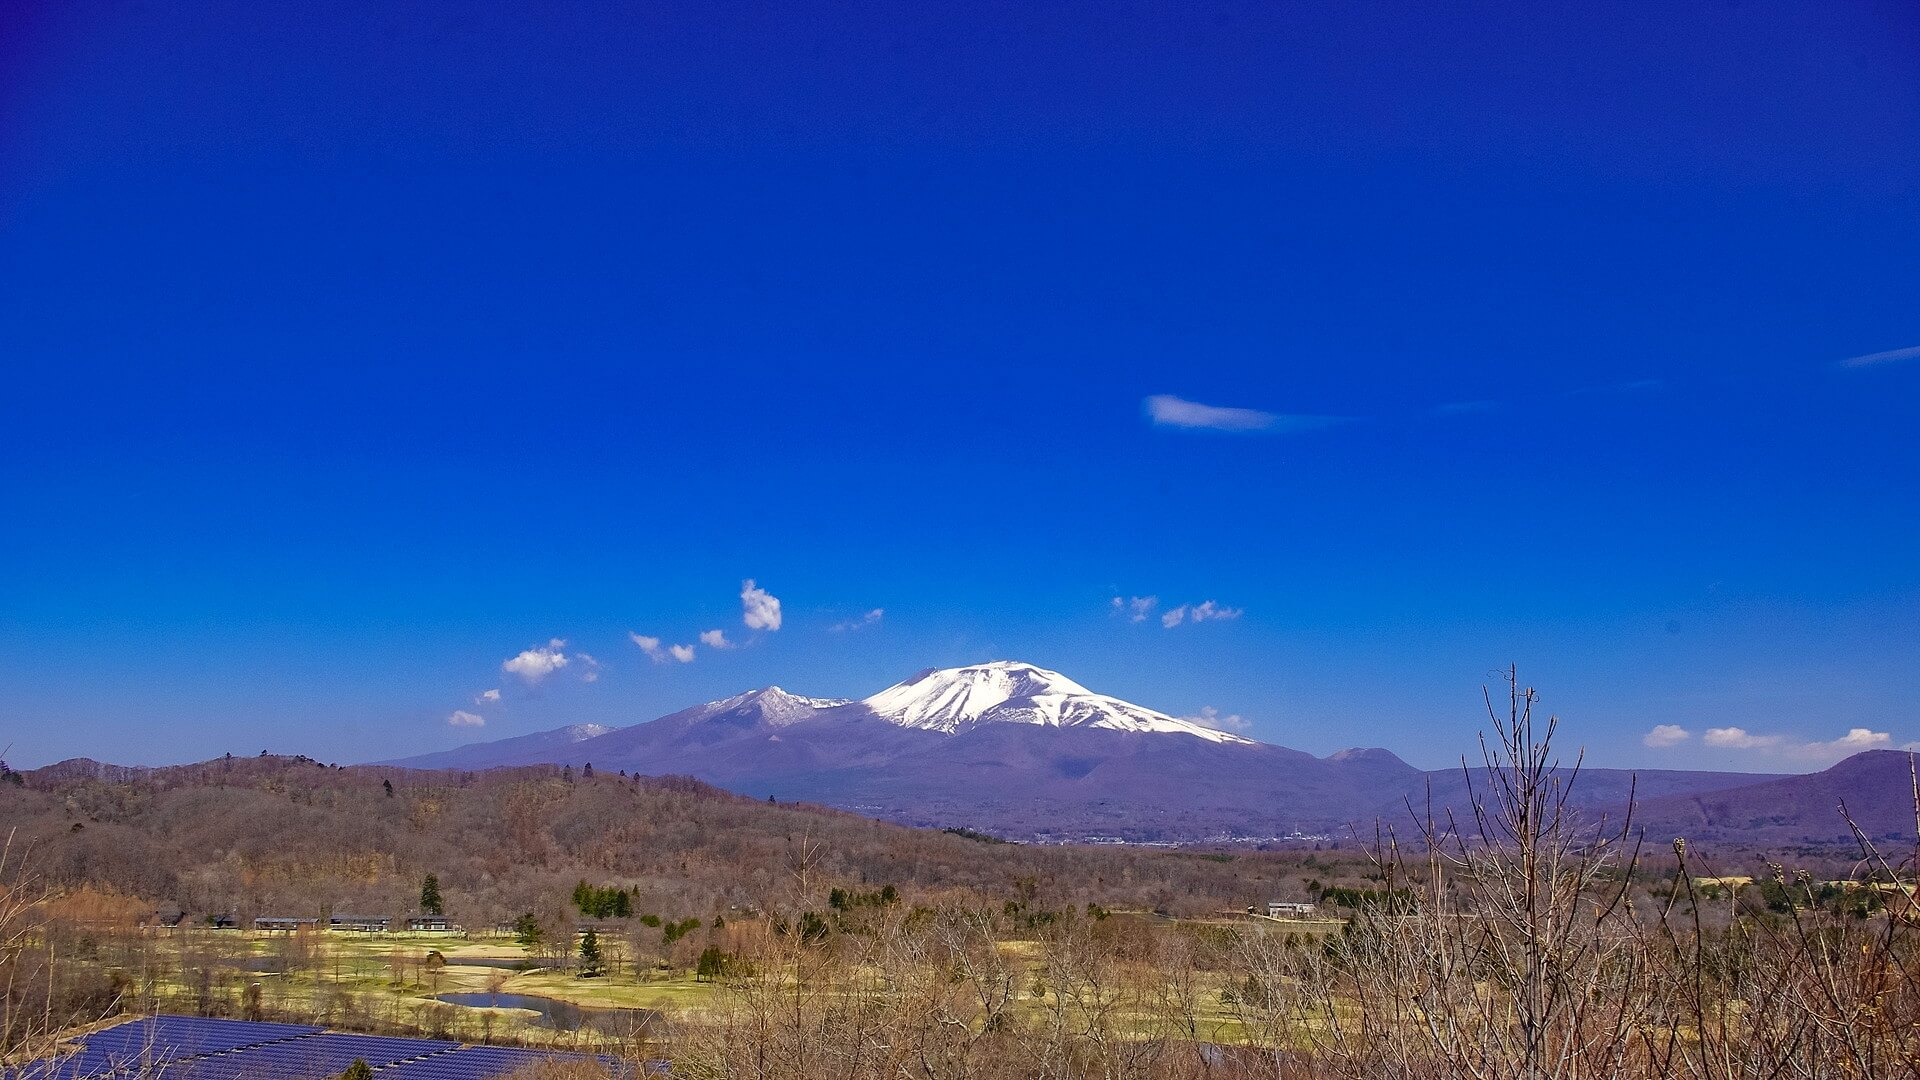 674.7 million yen The huge site of approximately 74,000 sq m 360 degree panoramic view.